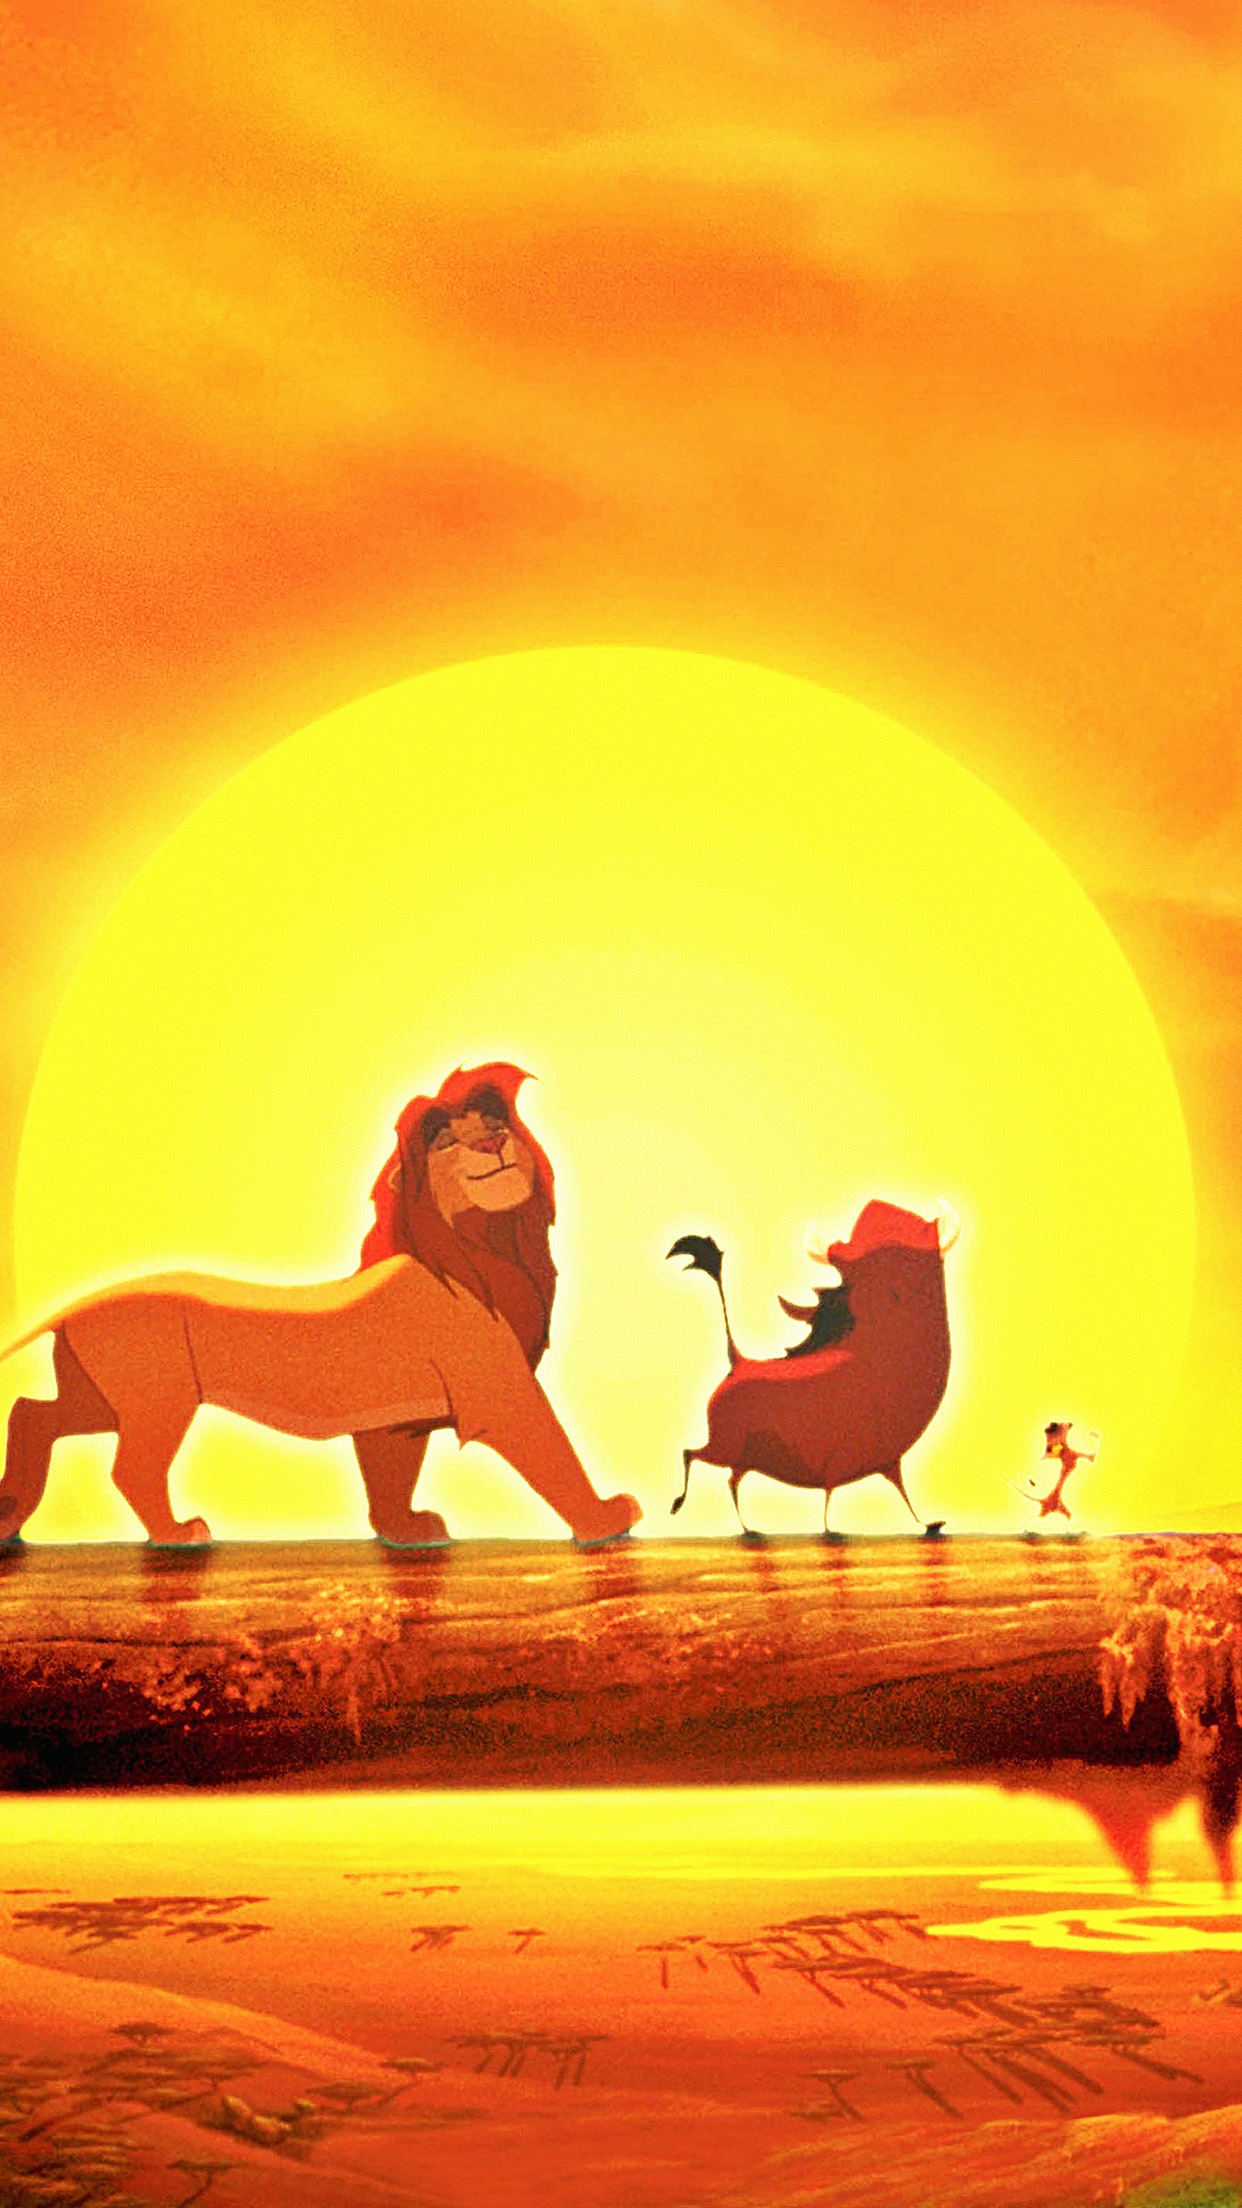 Walt Disney Lion King Anime Art Poster Android Wallpaper Android